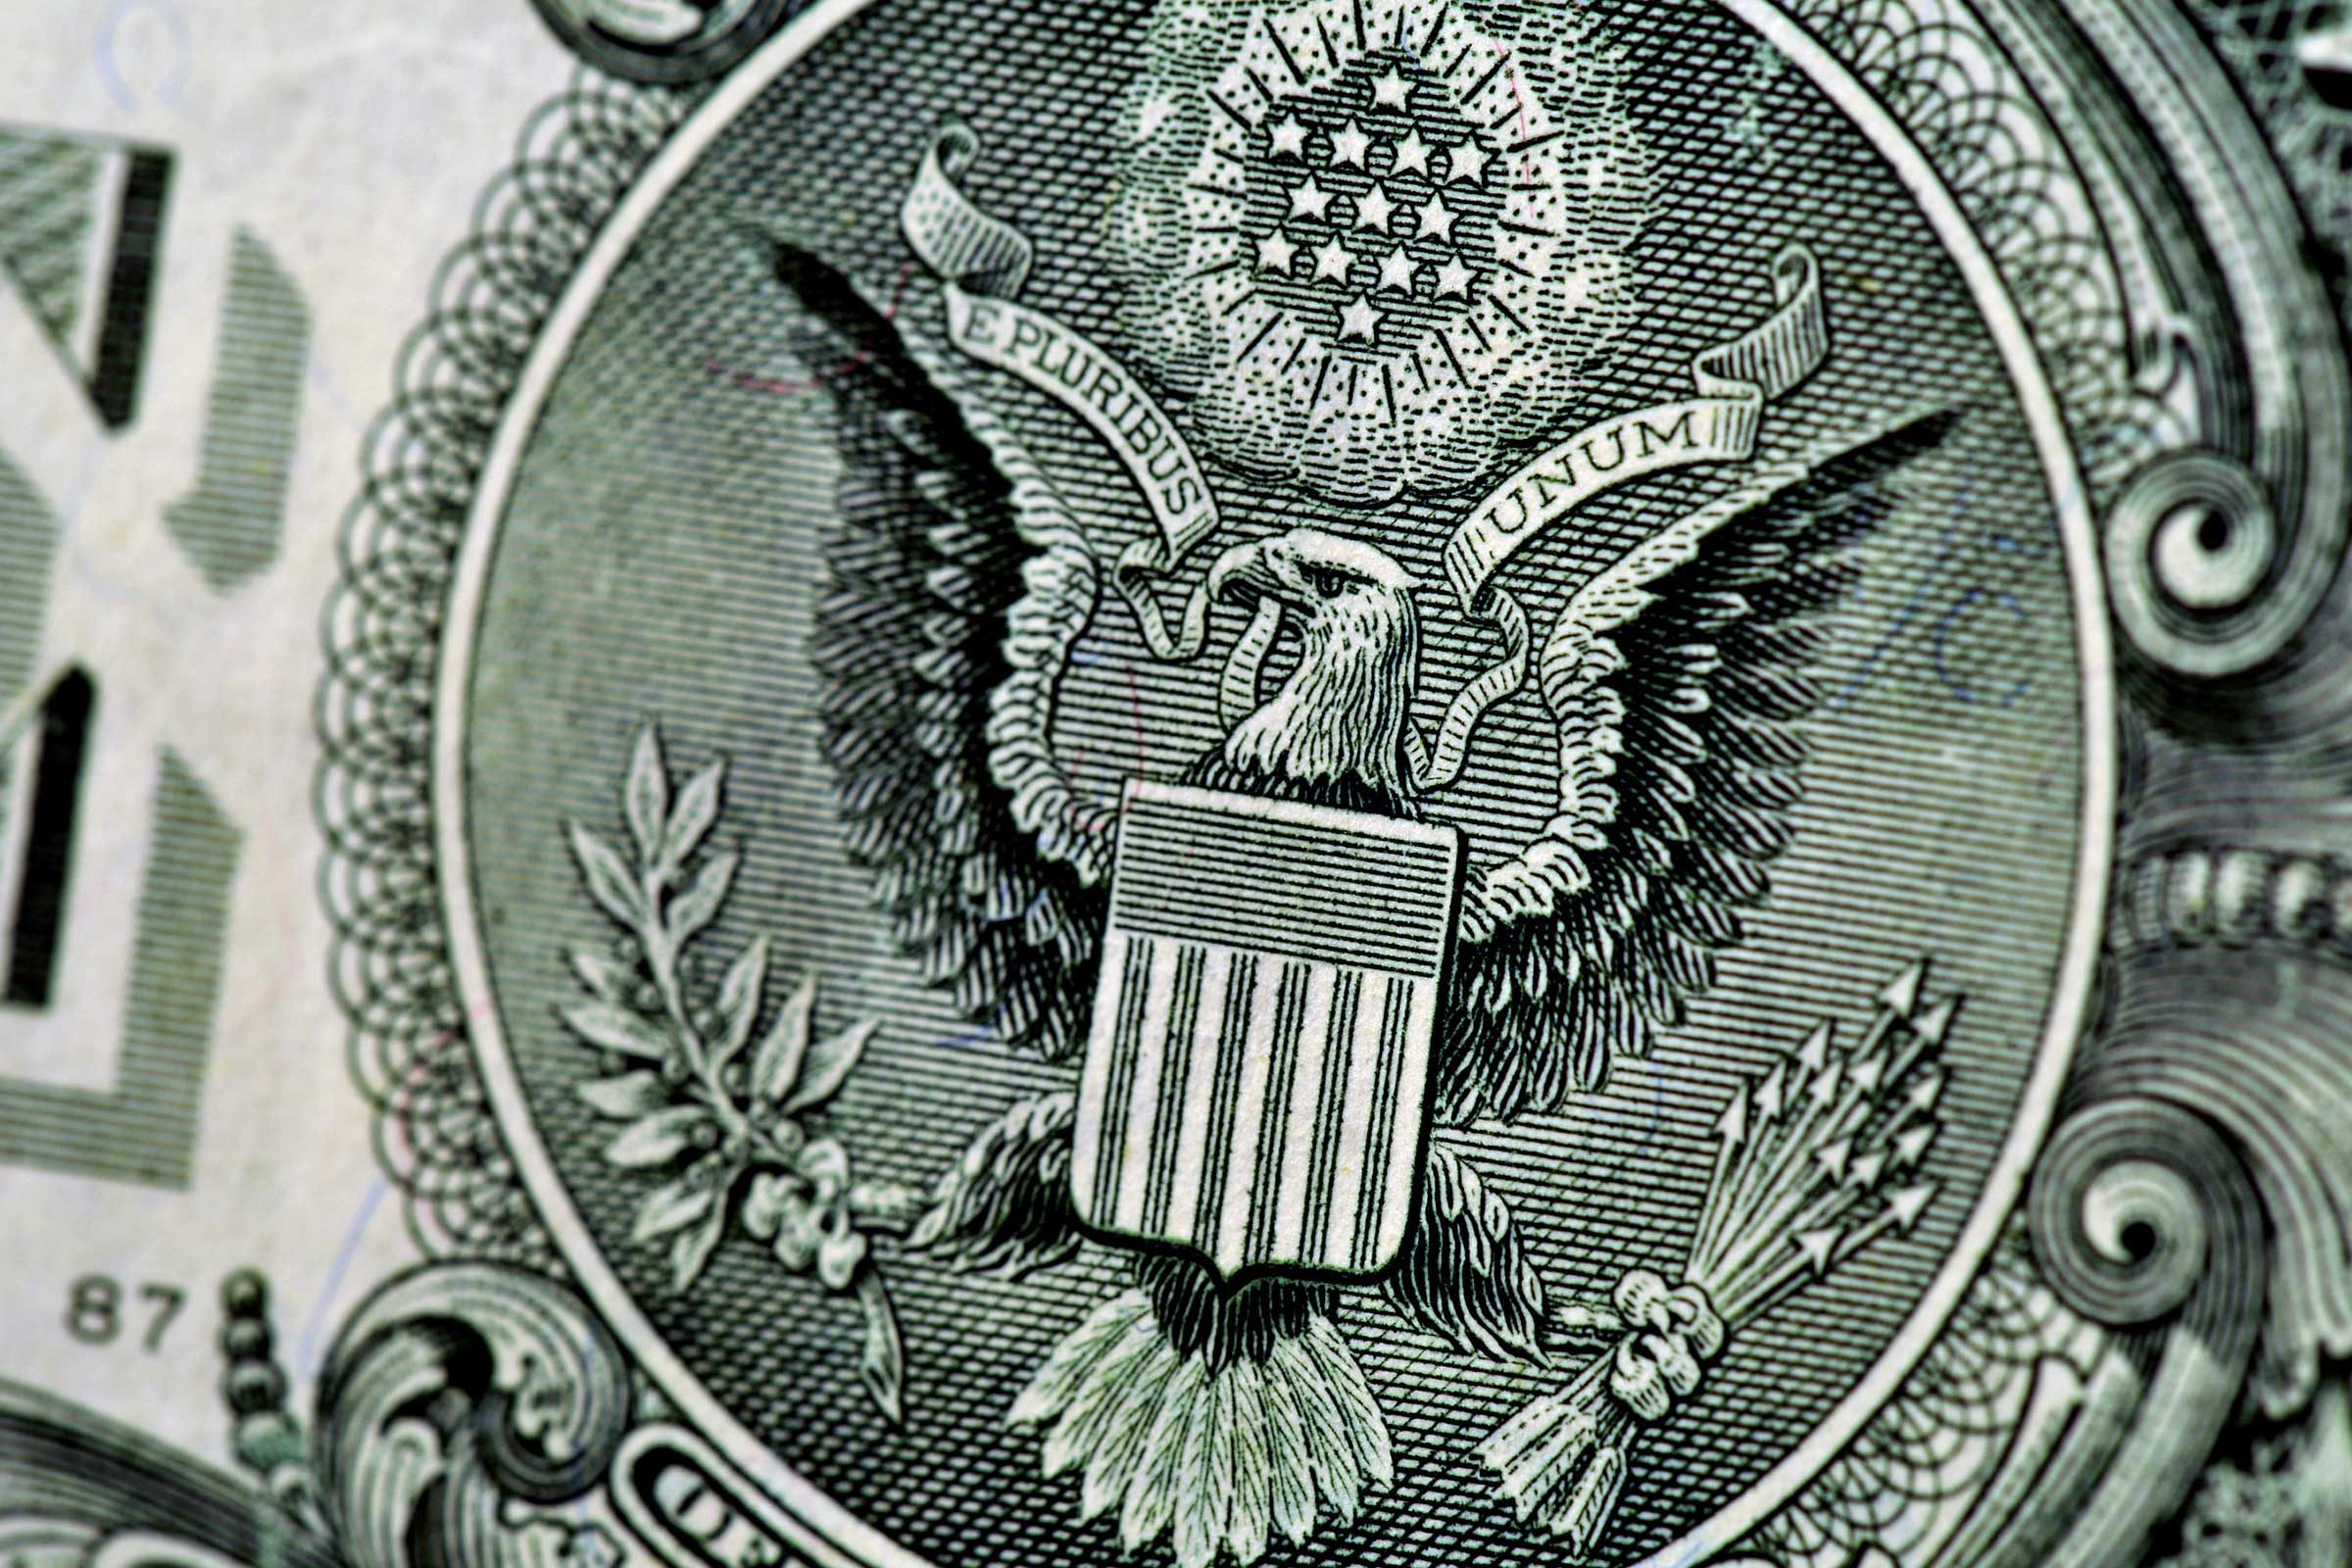 Dollar bill symbols what they mean readers digest stars above eagle biocorpaavc Images